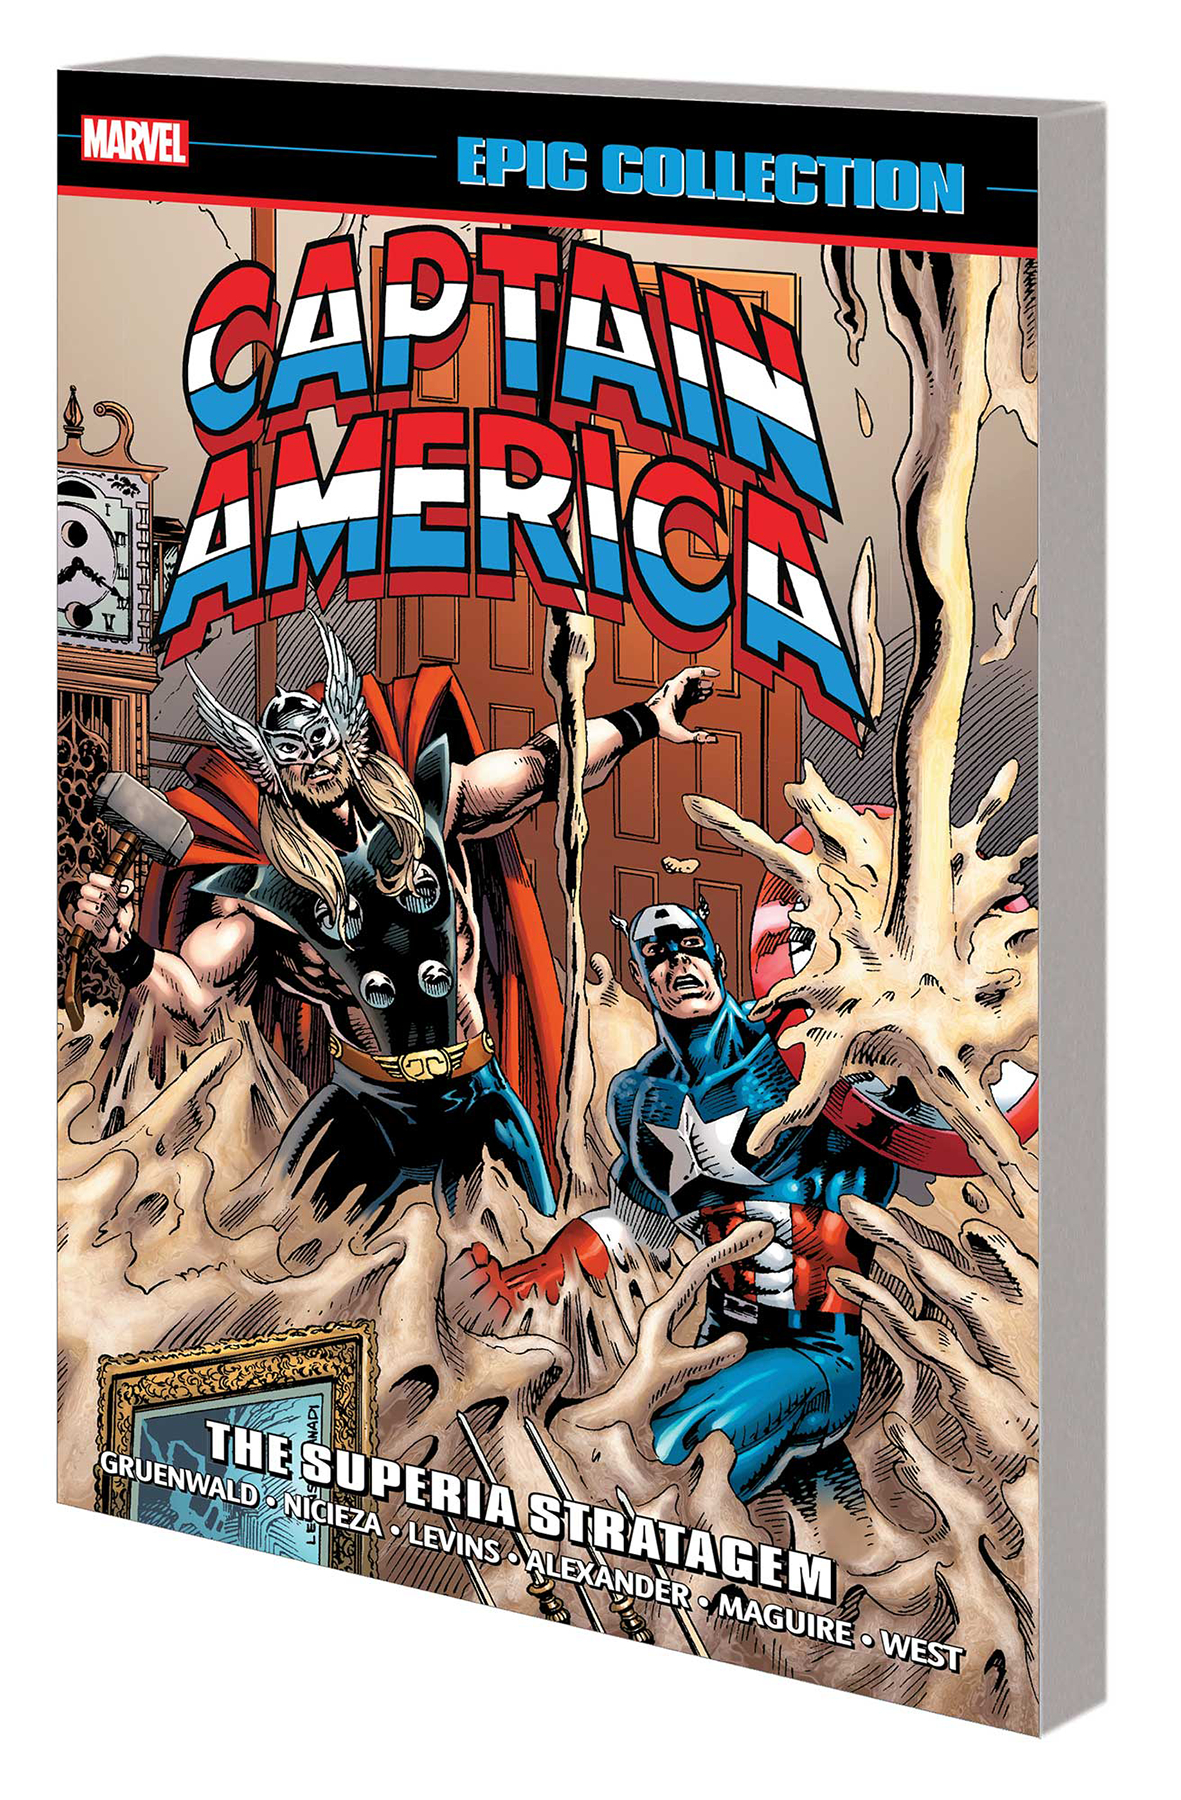 CAPTAIN AMERICA EPIC COLLECTION TP SUPERIA STRATAGEM